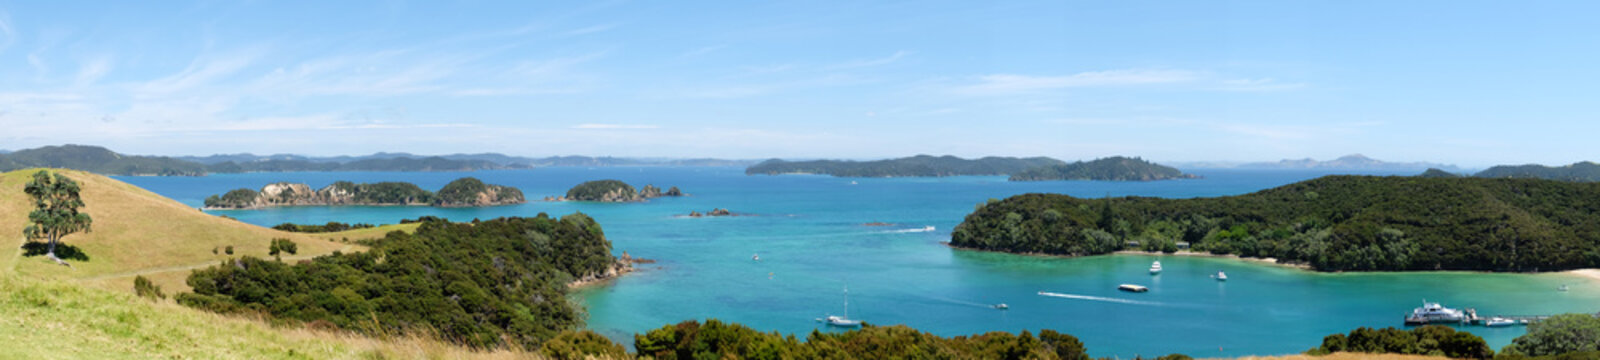 Panoramic view over Otehei Bay and Bay of Islands, New Zealand, NZ from Urupukapuka Island